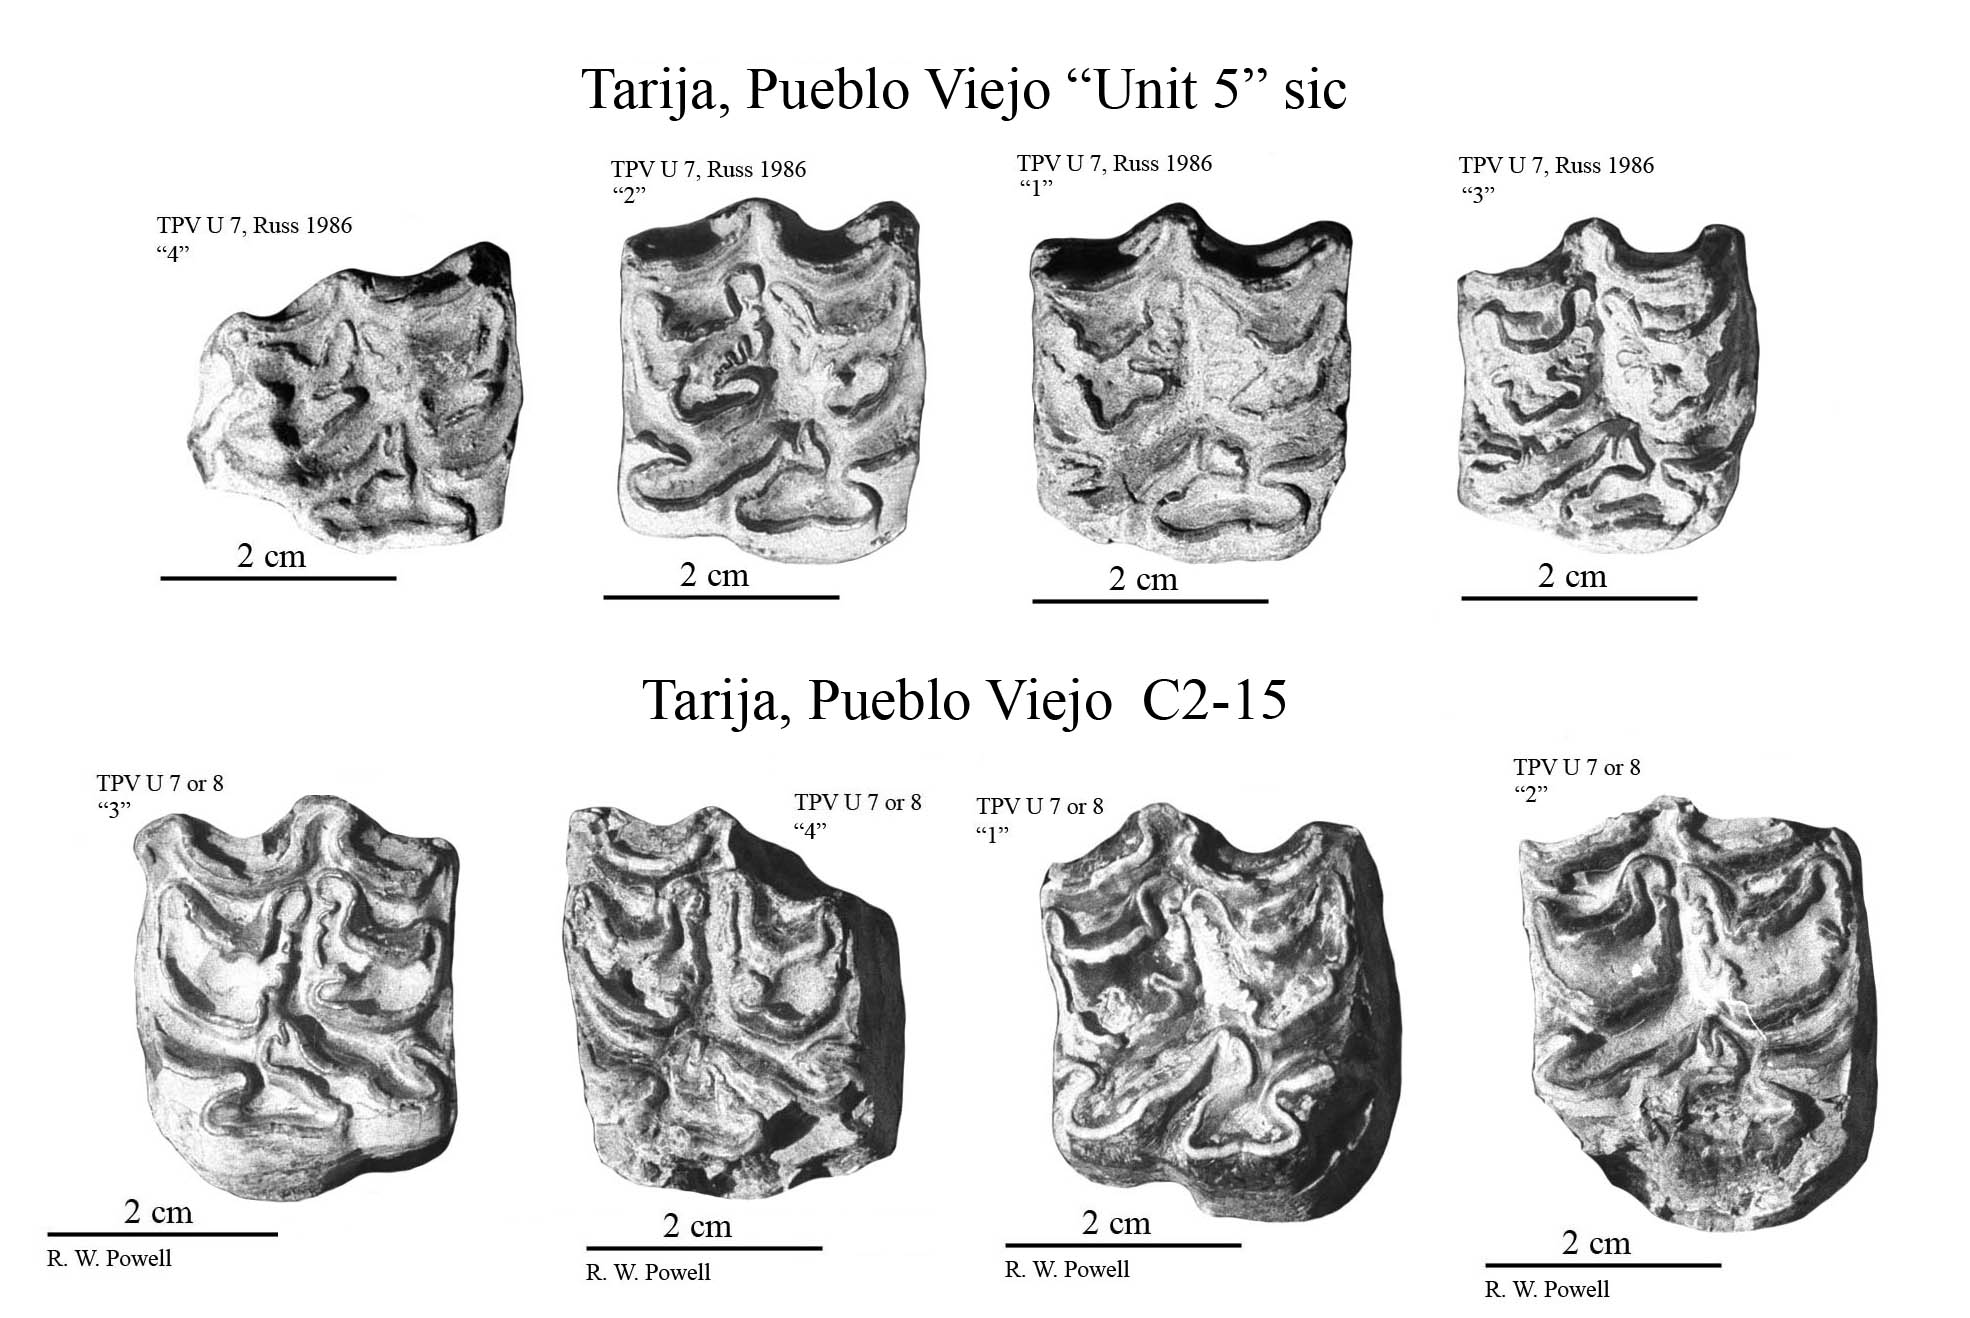 Pueblo Viejo Upper cheek teeth photos